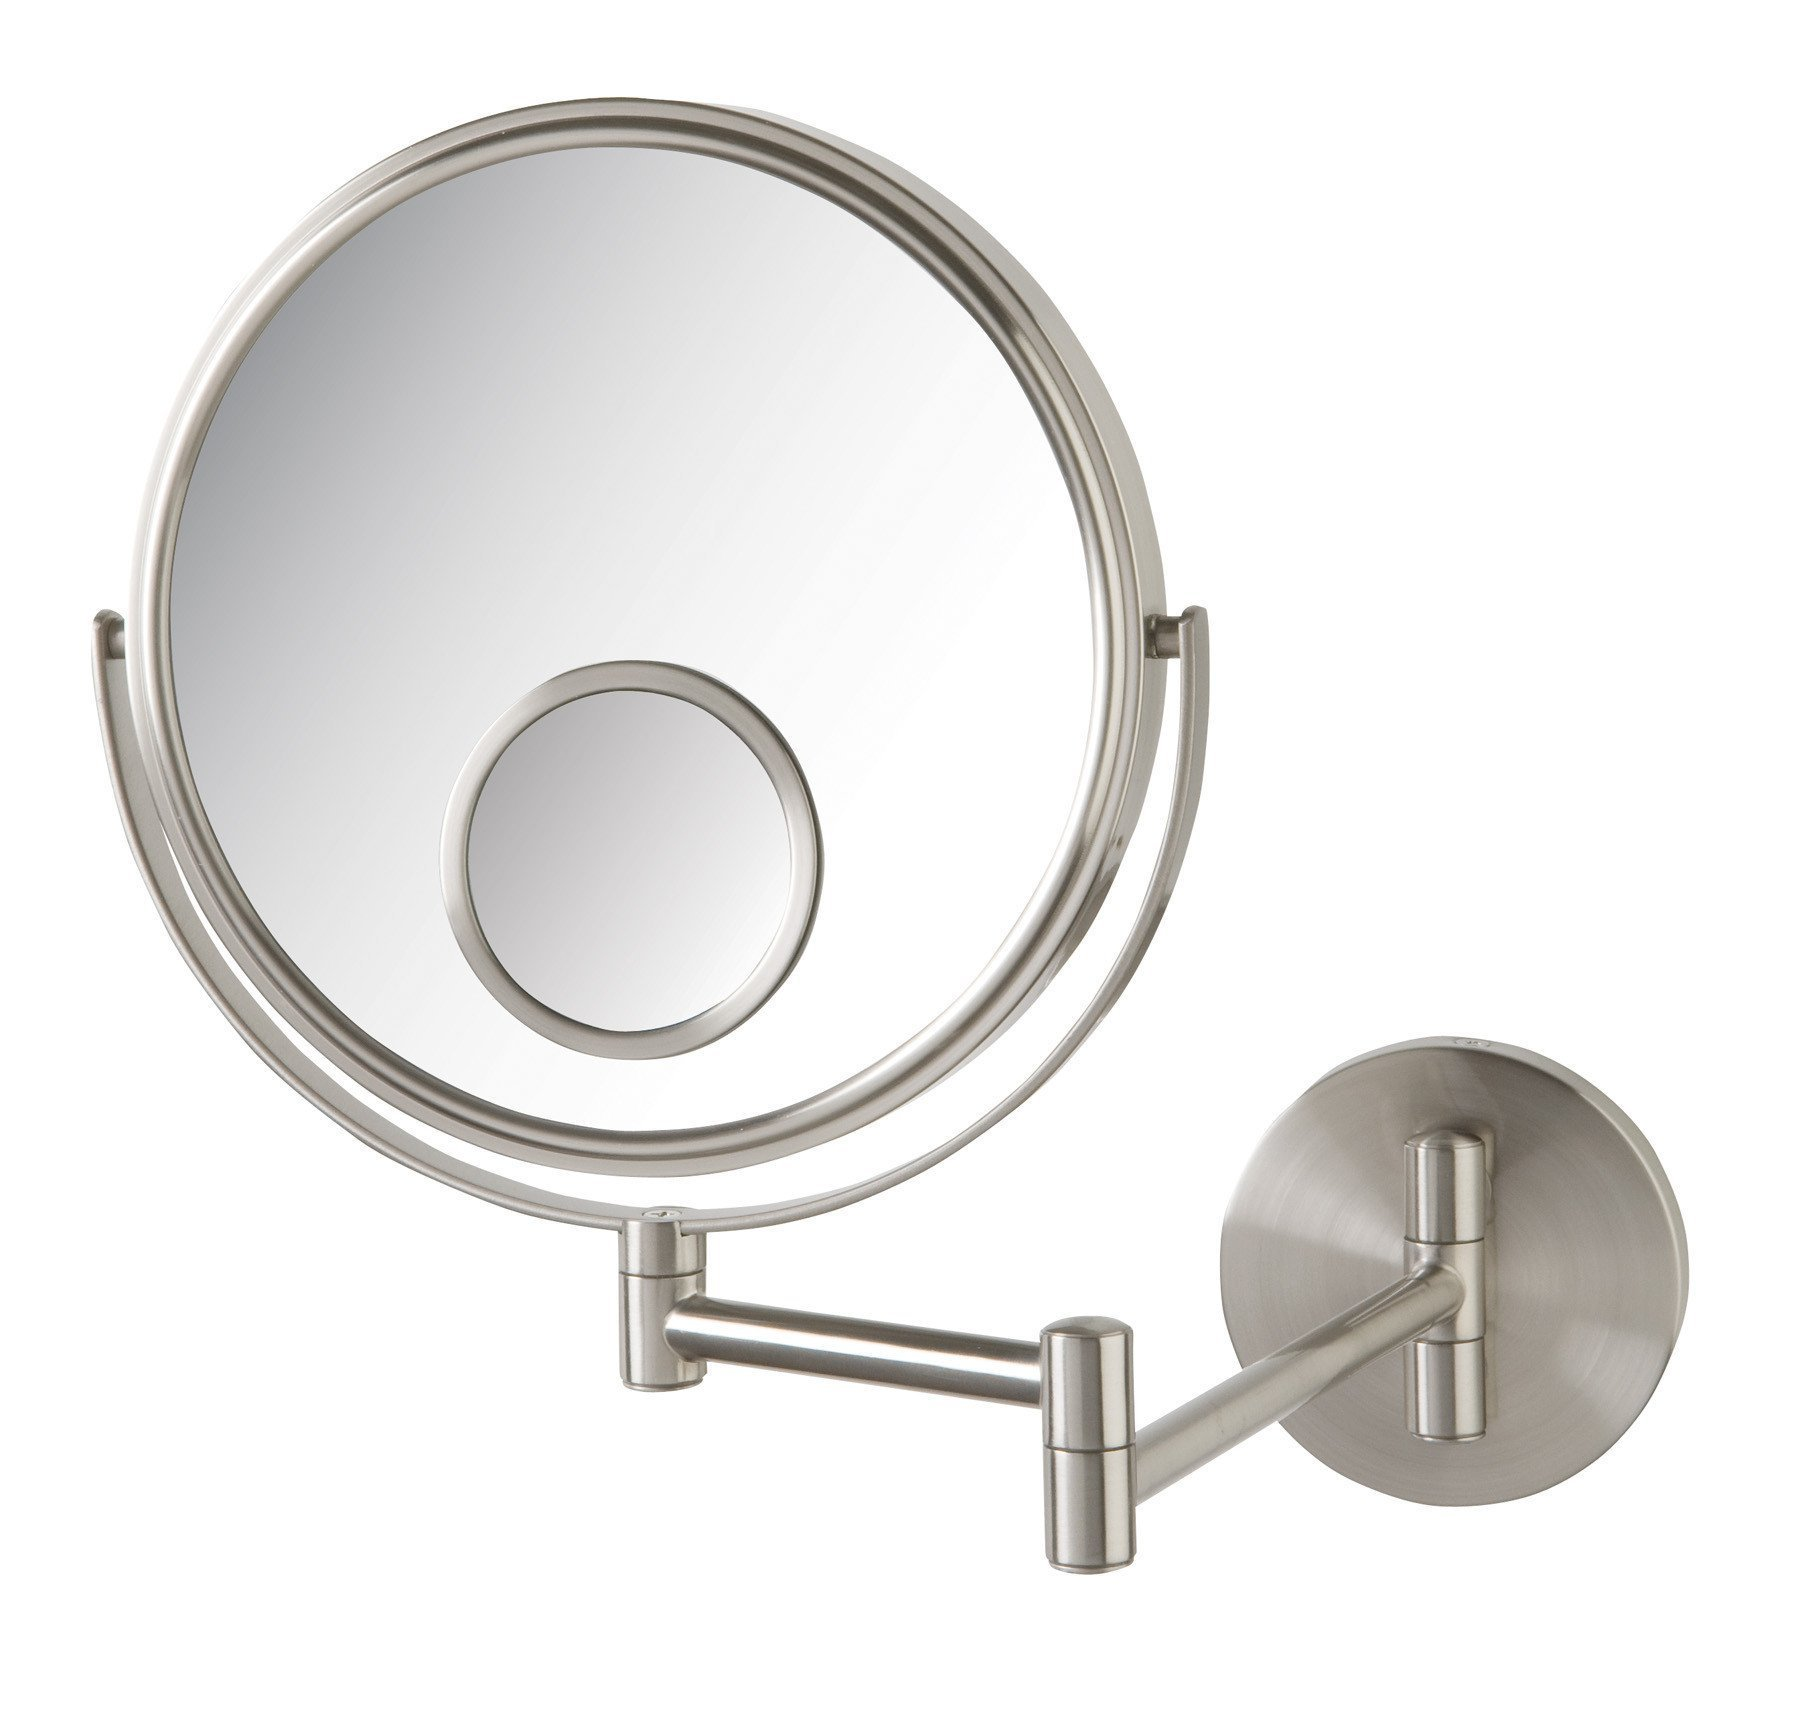 Jerdon JP7510N Wall Mount Makeup Mirror with 10x and 15x Magnification, Nickel Finish, 8'' by Jerdon